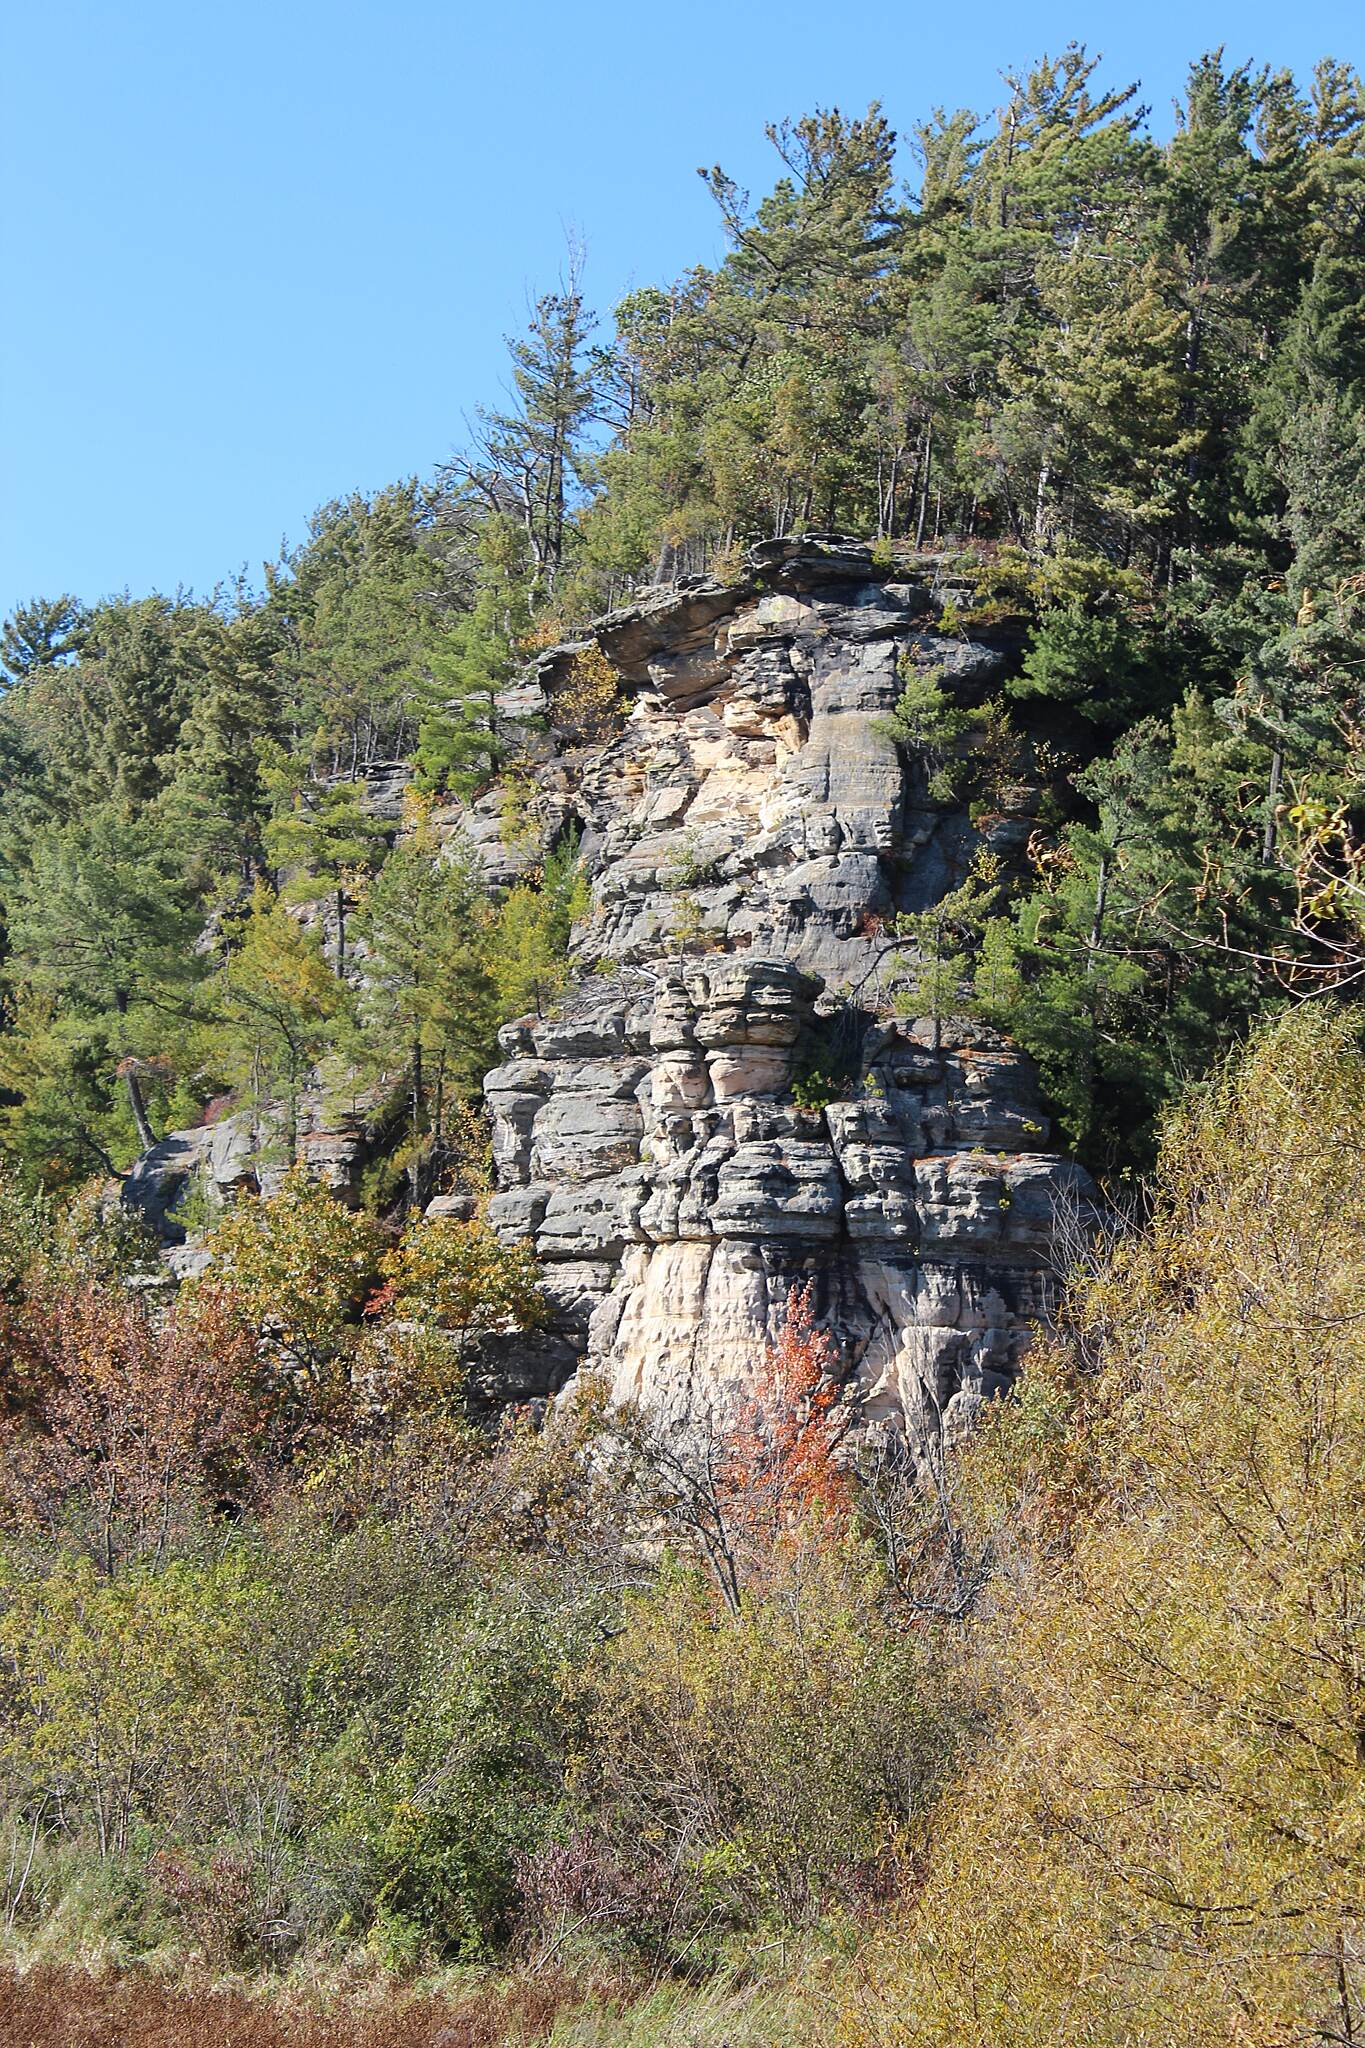 400 State Trail 400 State Trail - Rock Wall A pretty autumn picture of a rock wall formation located directly next to Hemlock Slough.  Which is situated between Wonewoc, WI and La Valle, WI on the '400' State Trail.